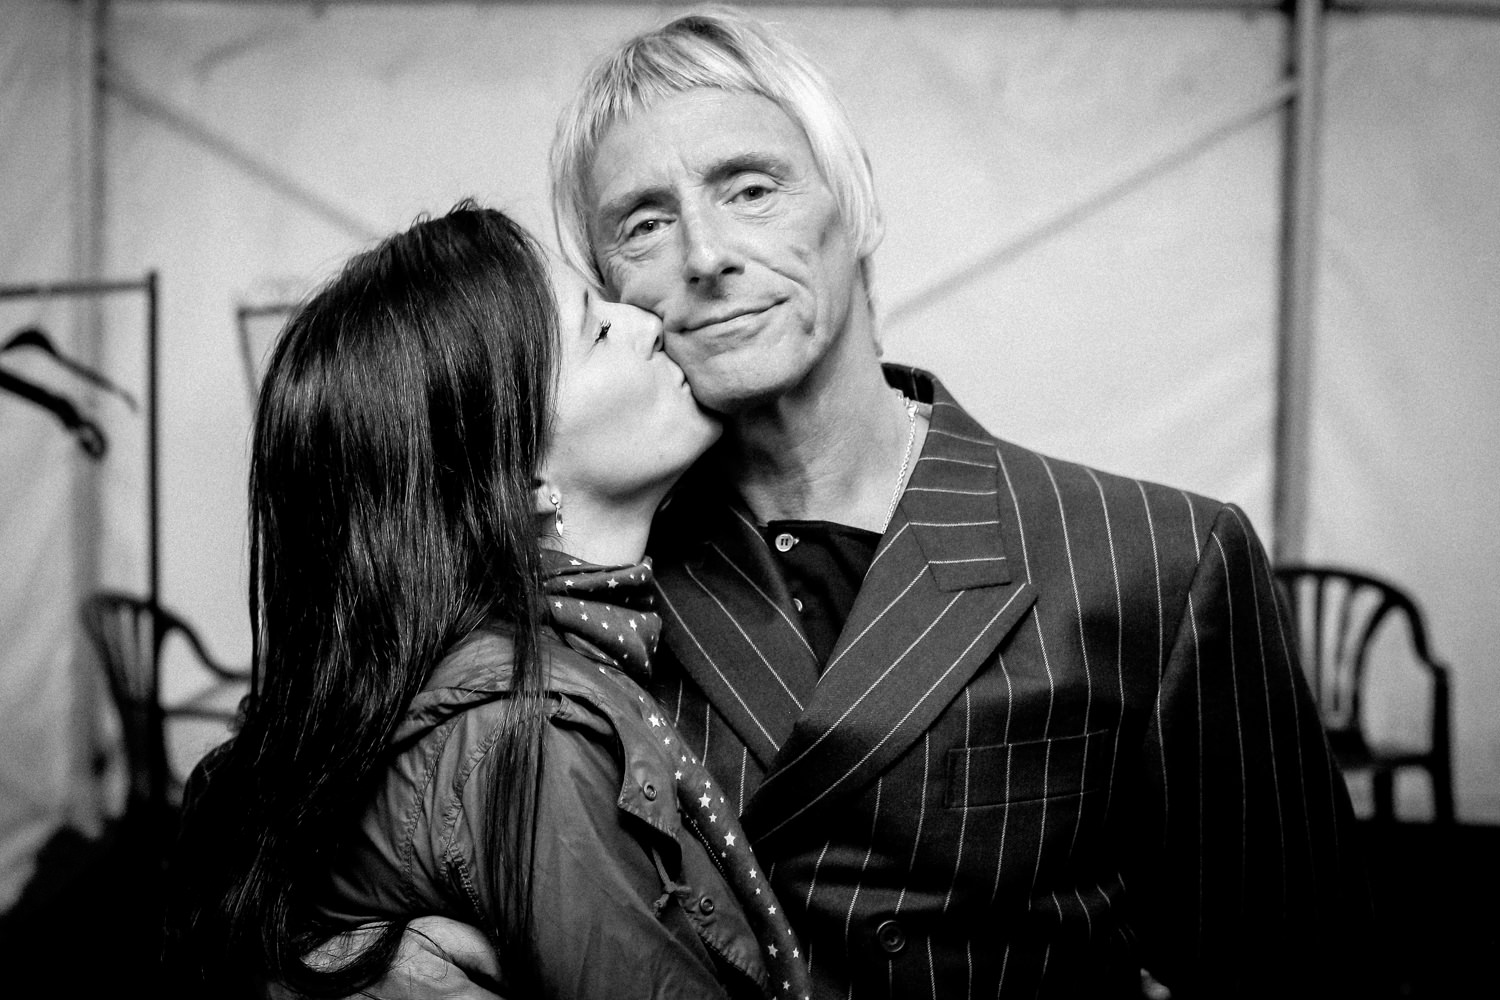 Black and white photo of Paul Weller wife kissing him by Celebrity wedding photographer Wes Simpson